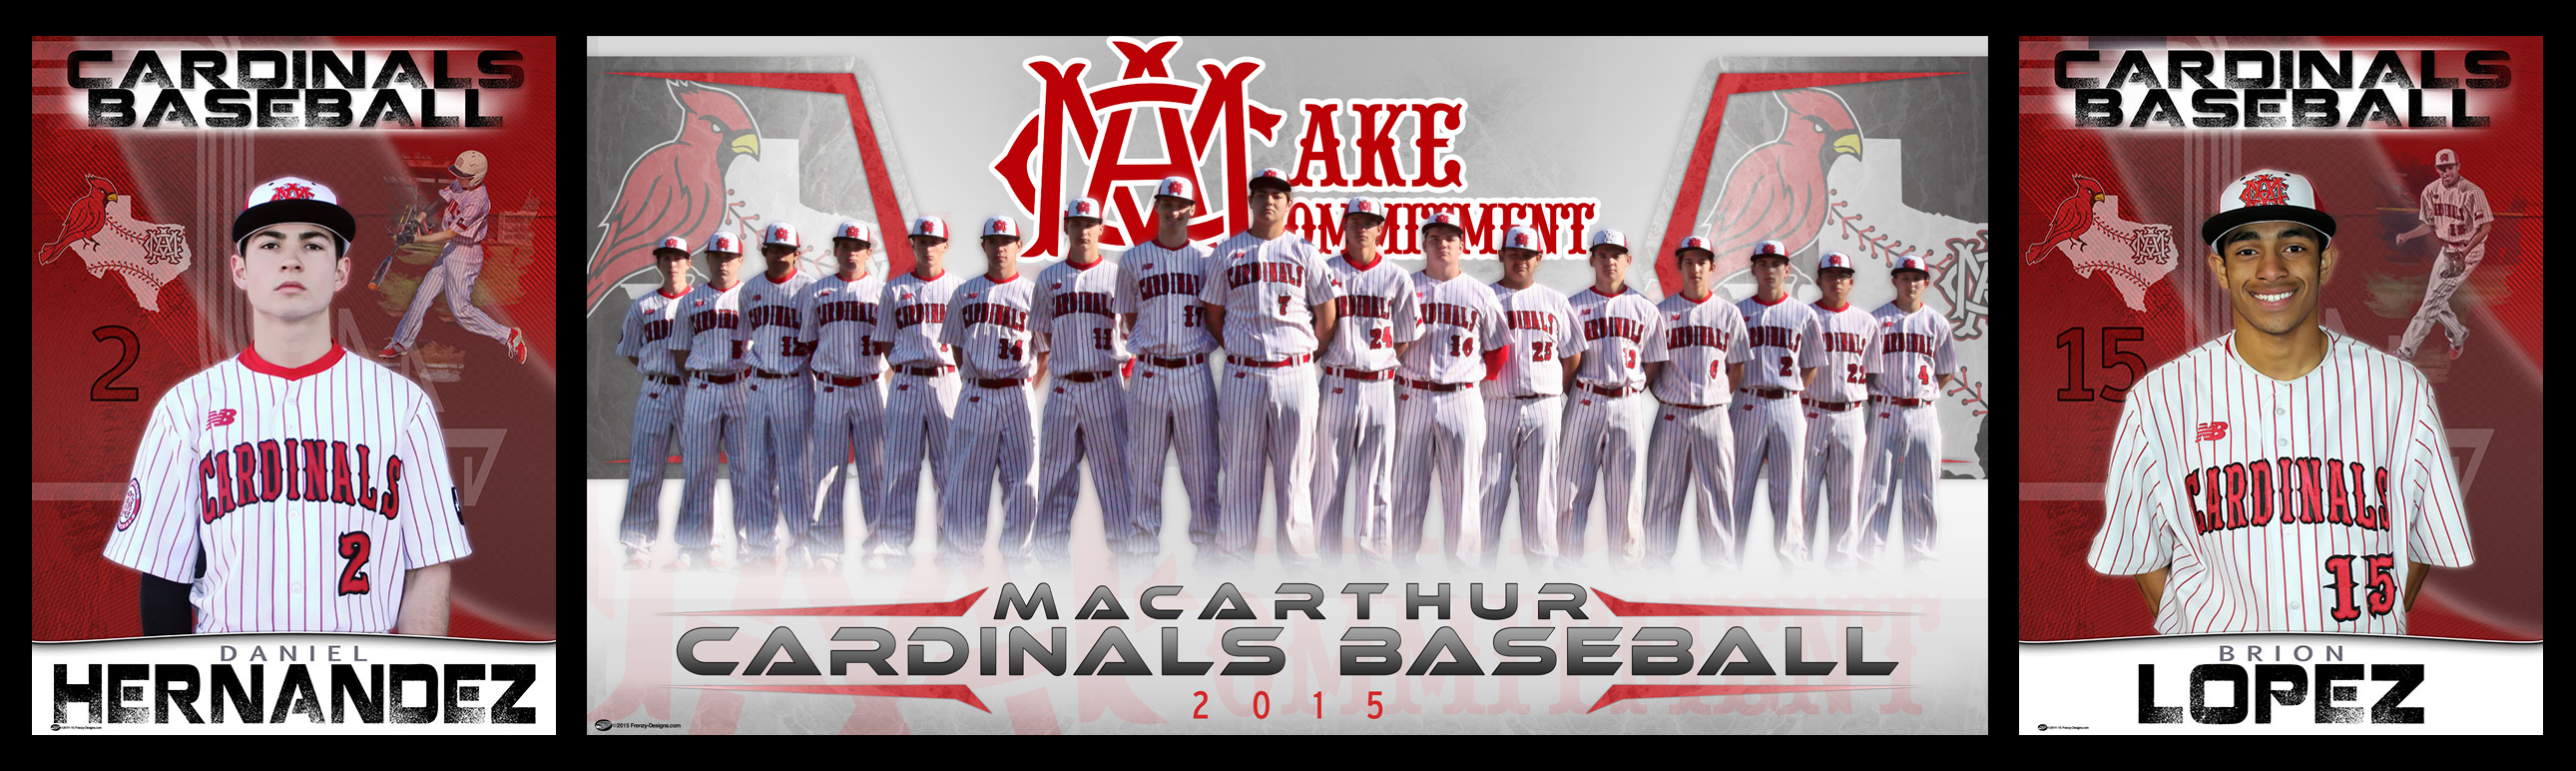 Custom Baseball Banner - Irving MacArthur High School